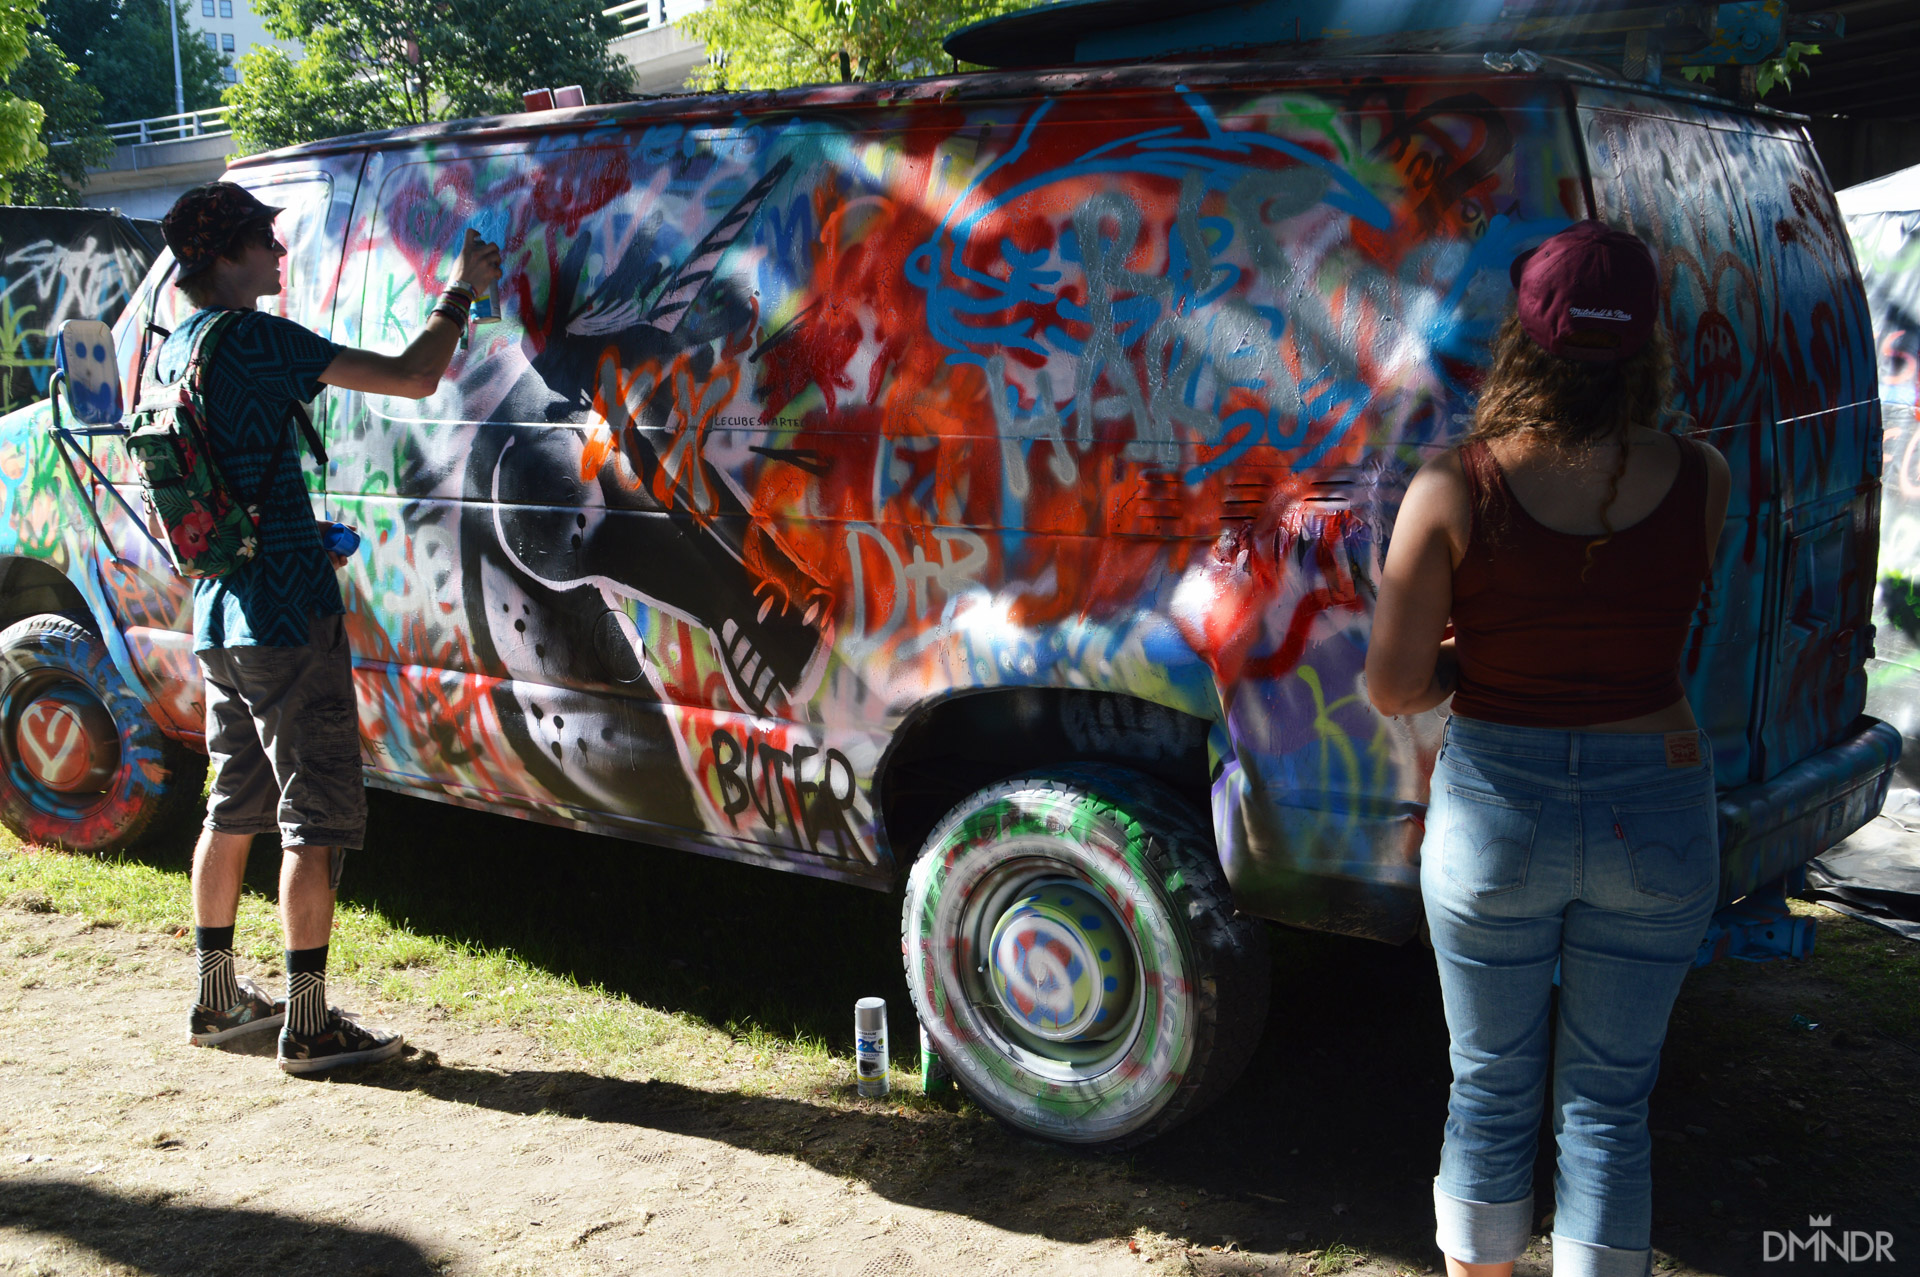 The Art Van and taggers